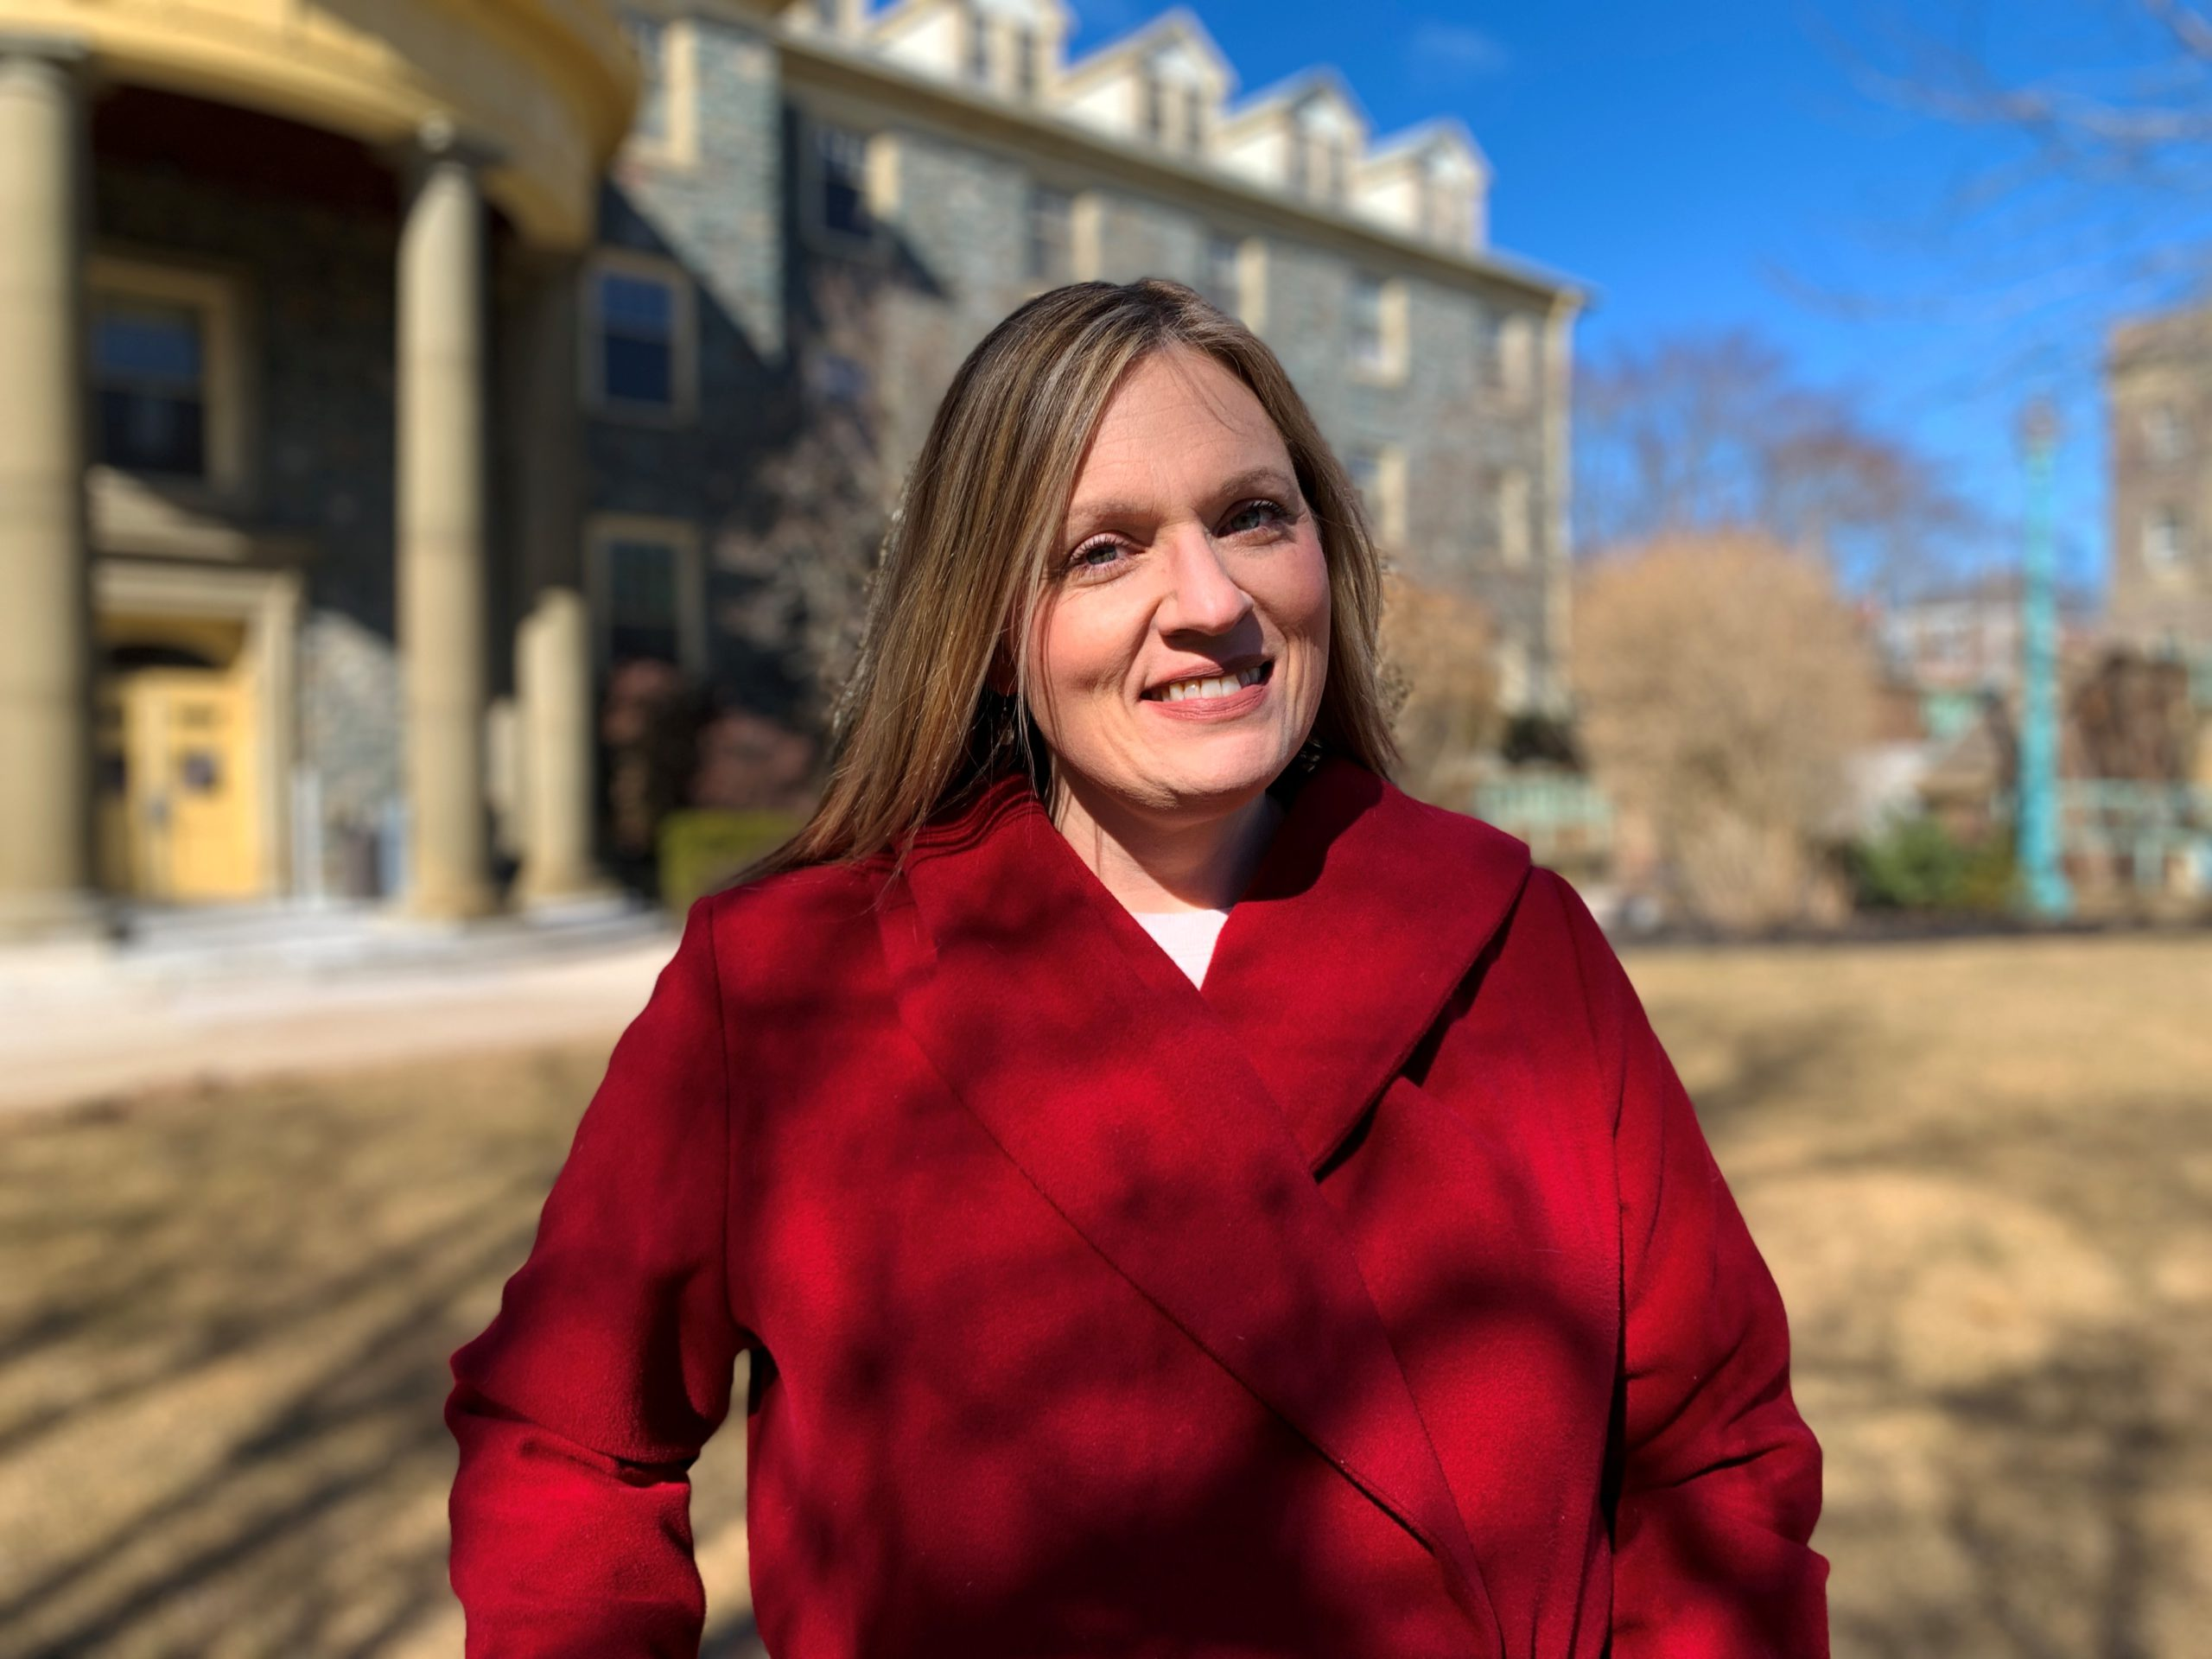 IAPMD's executive director Sandi MacDonald poses for her portrait at the University of King's College in Halifax on March 16, 2021.